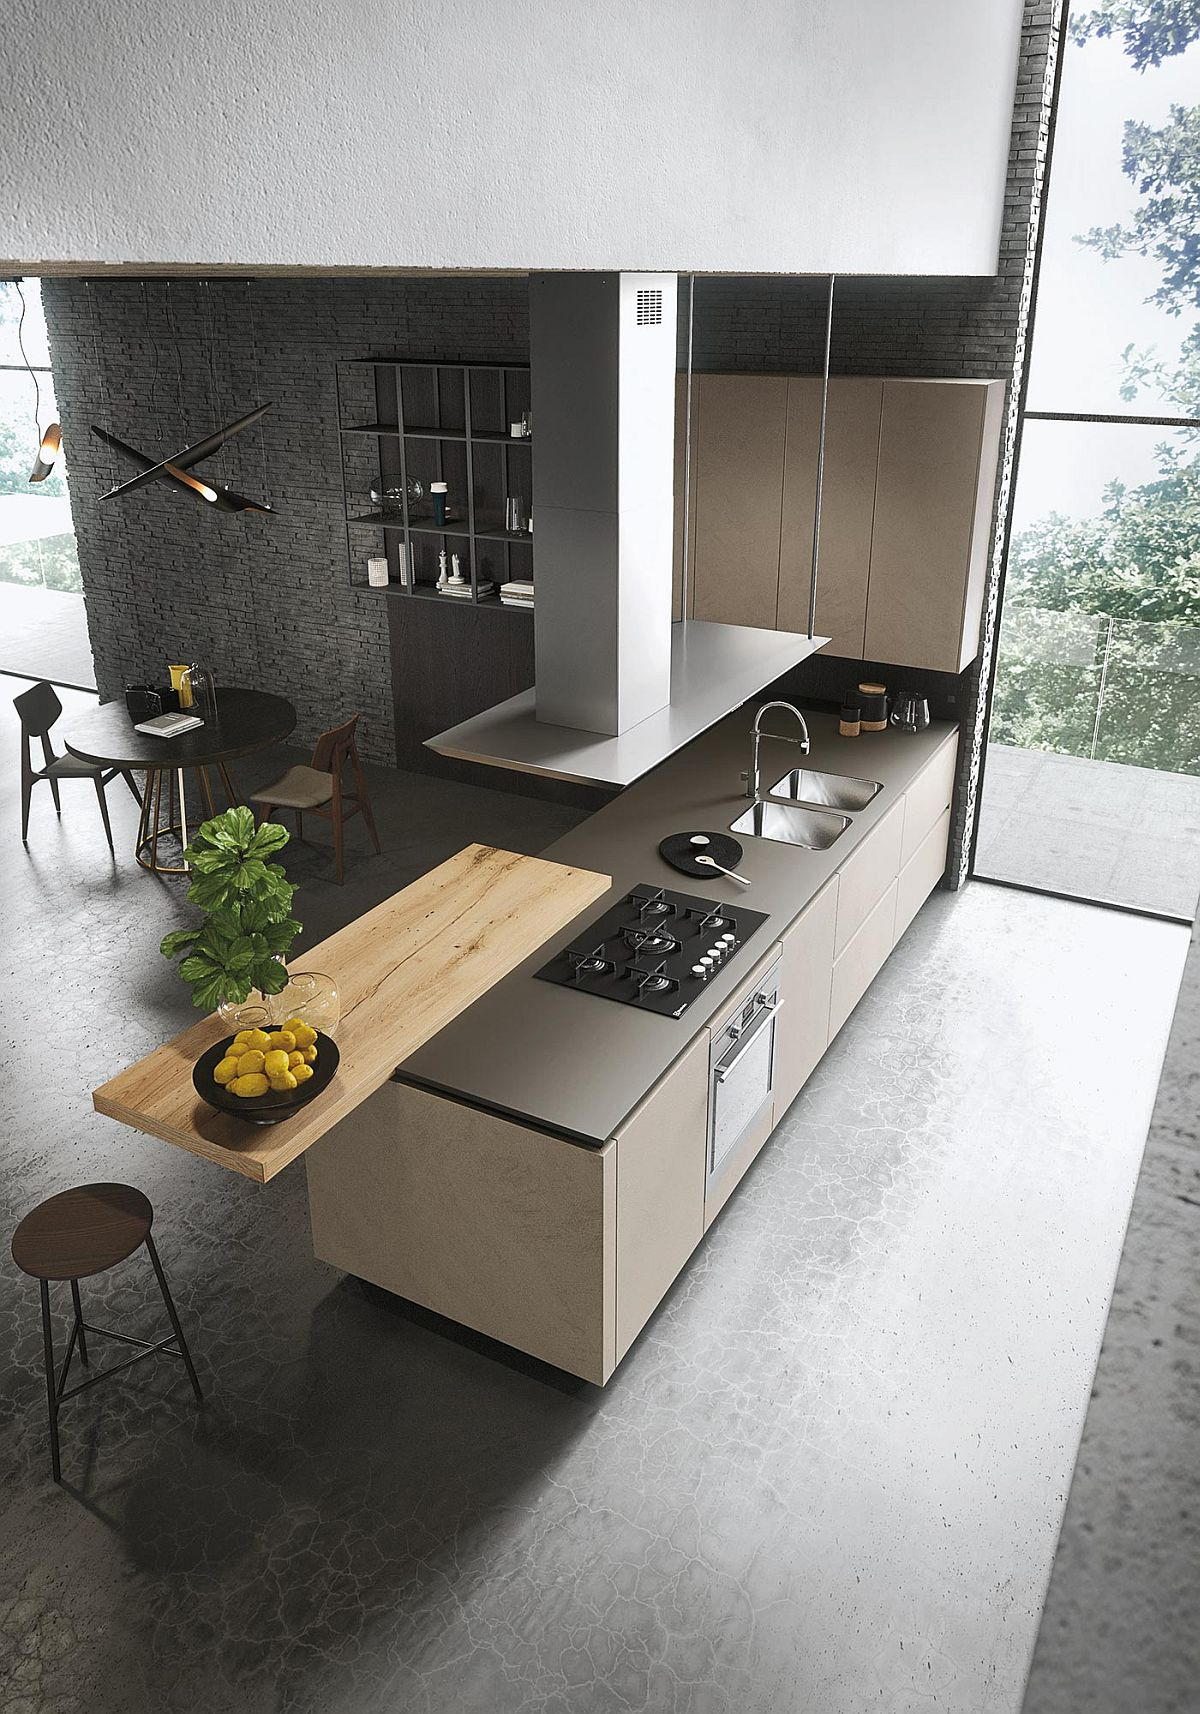 Standalone wooden attachment to the kitchen island can be used in a variety of ways